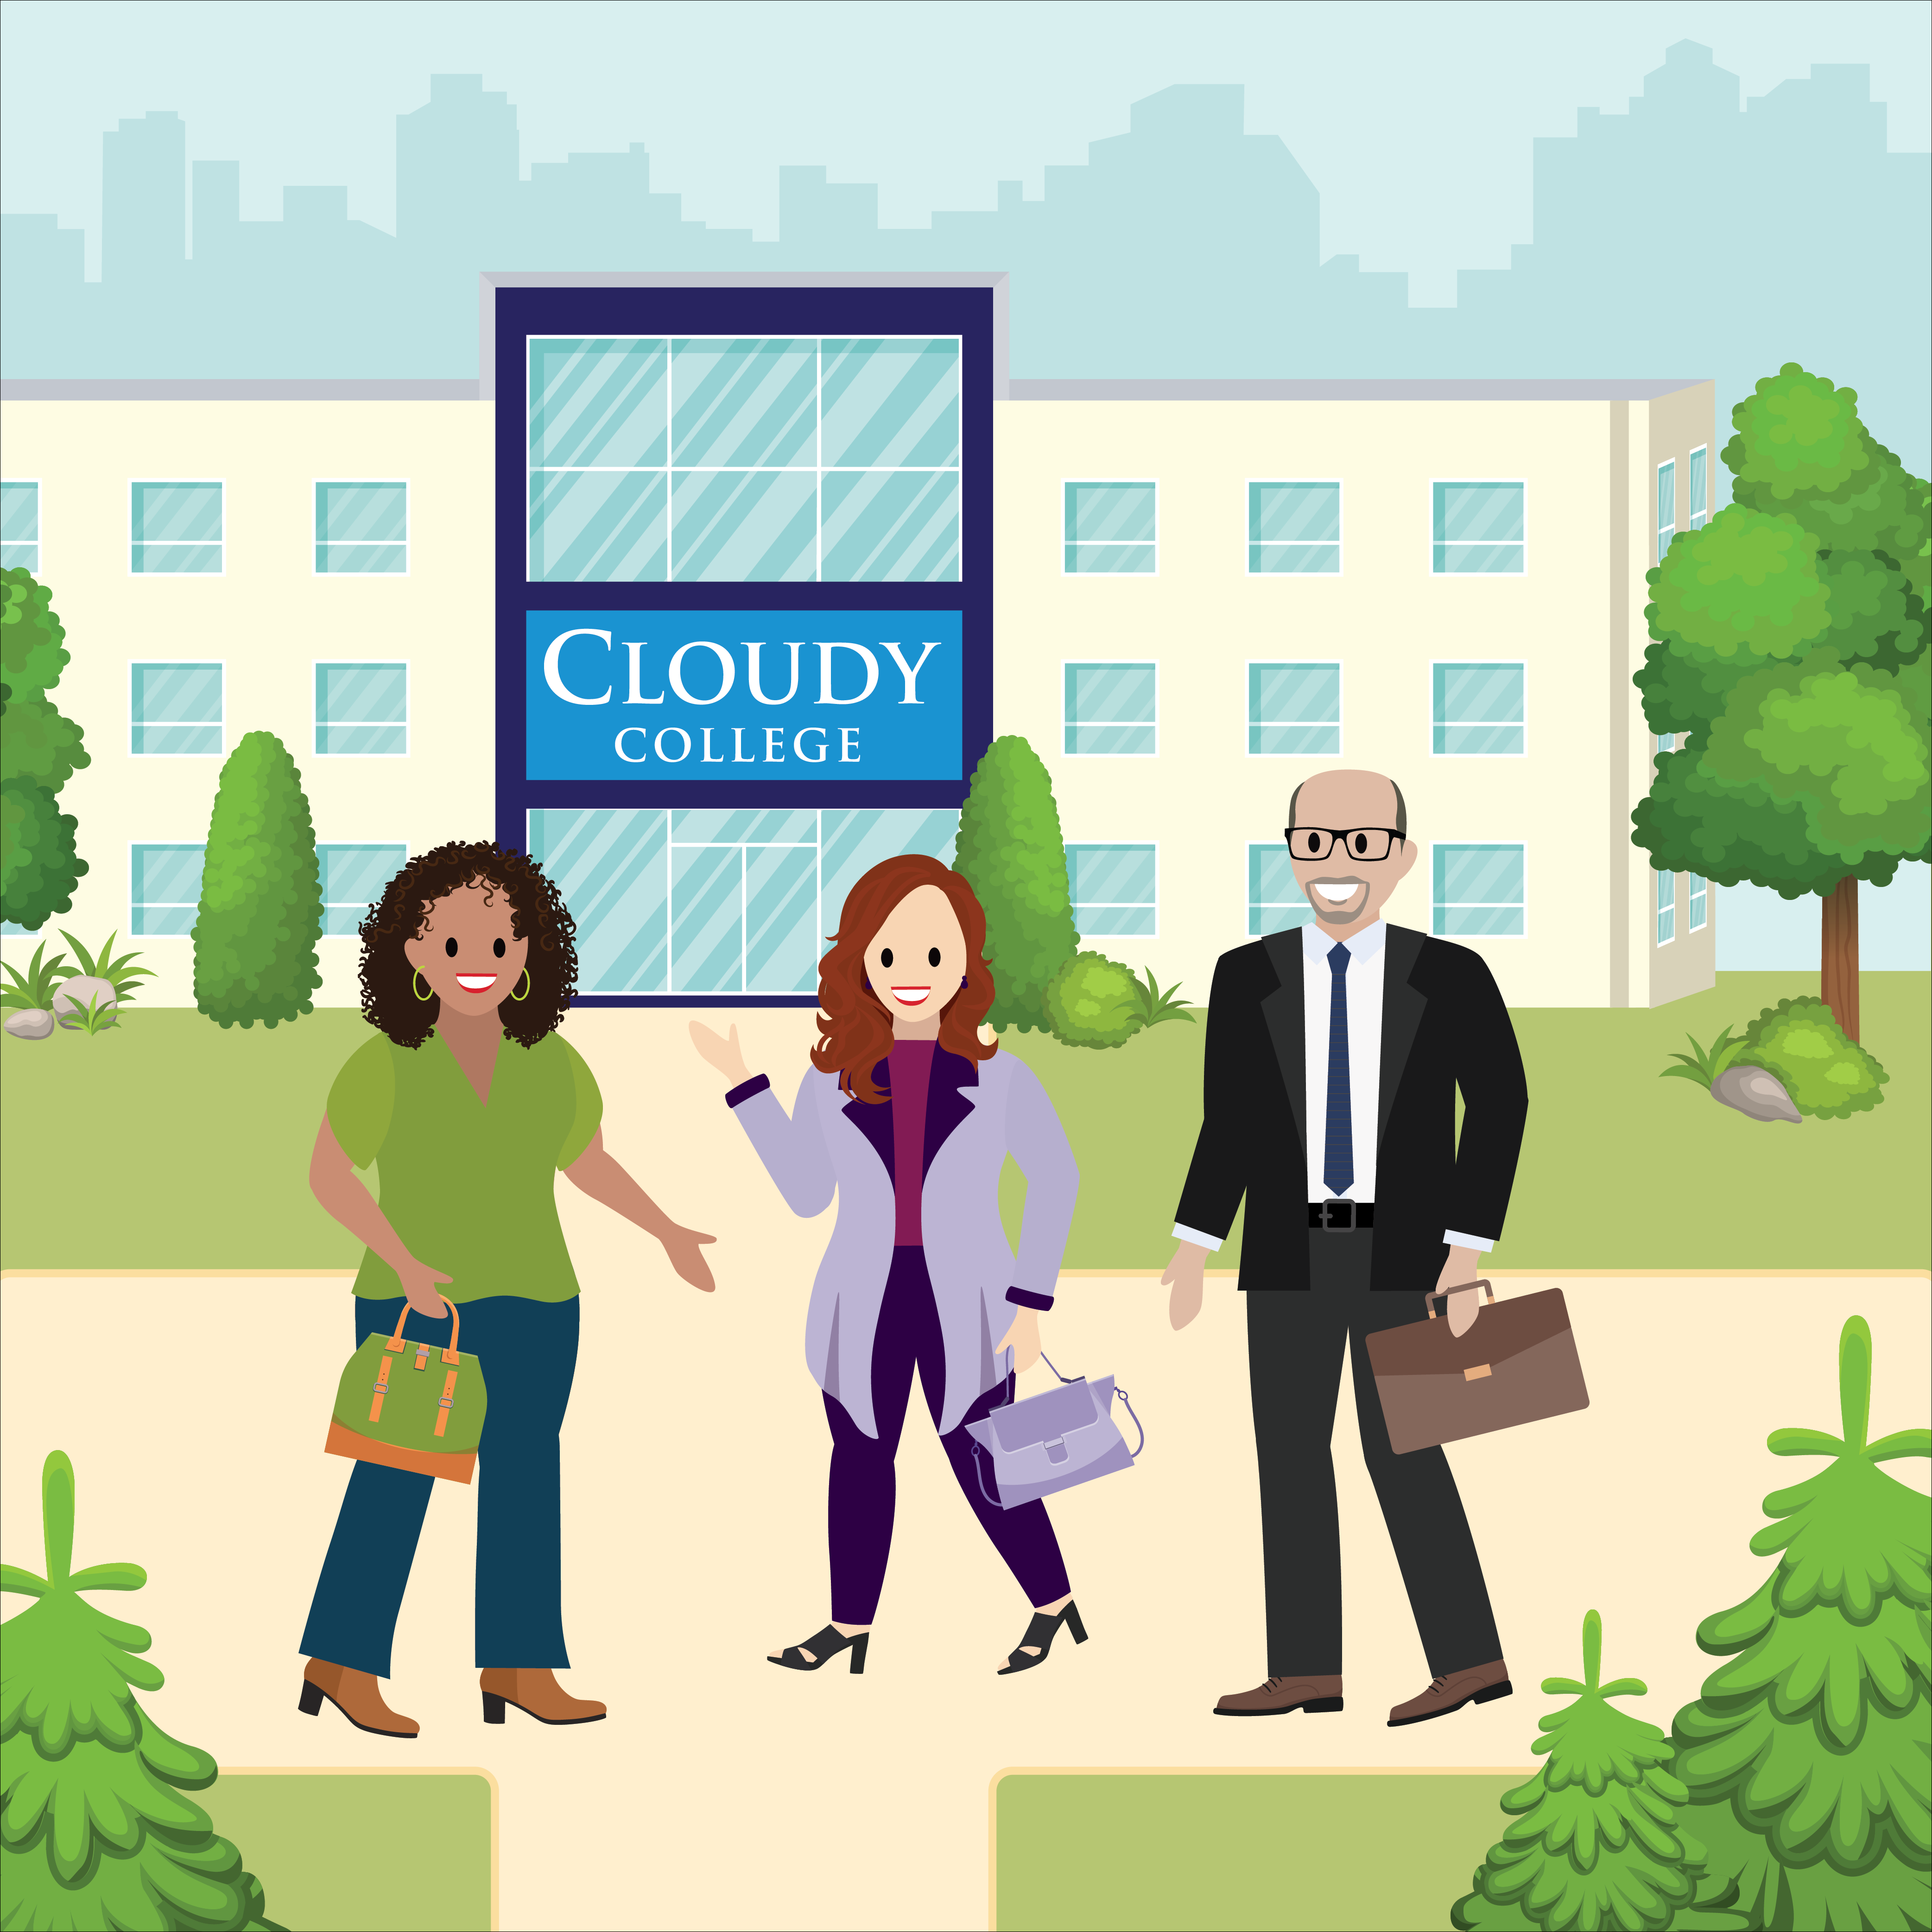 Members of the Cloudy College student experience team walk across campus.